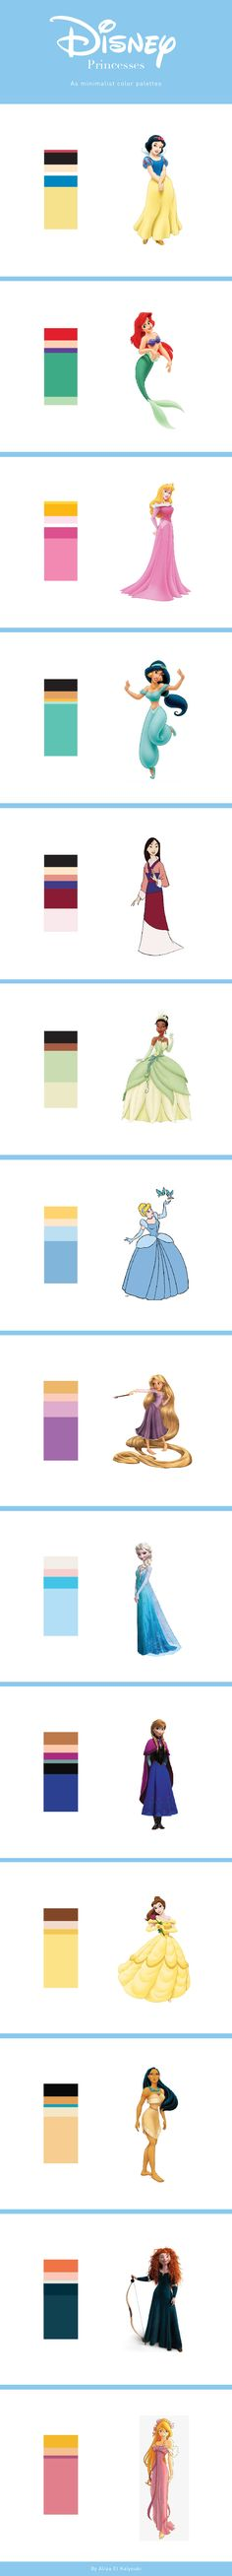 Minimalist Disney Princesses color palettes by Aliaa El Kalyoubi - Diy Pallets Disney Diy, Disney Crafts, Disney Love, Disney Pixar, Disney Princess Colors, Disney Colors, Viaje A Disneyland Paris, Disneyland Ideas, Crochet Projects